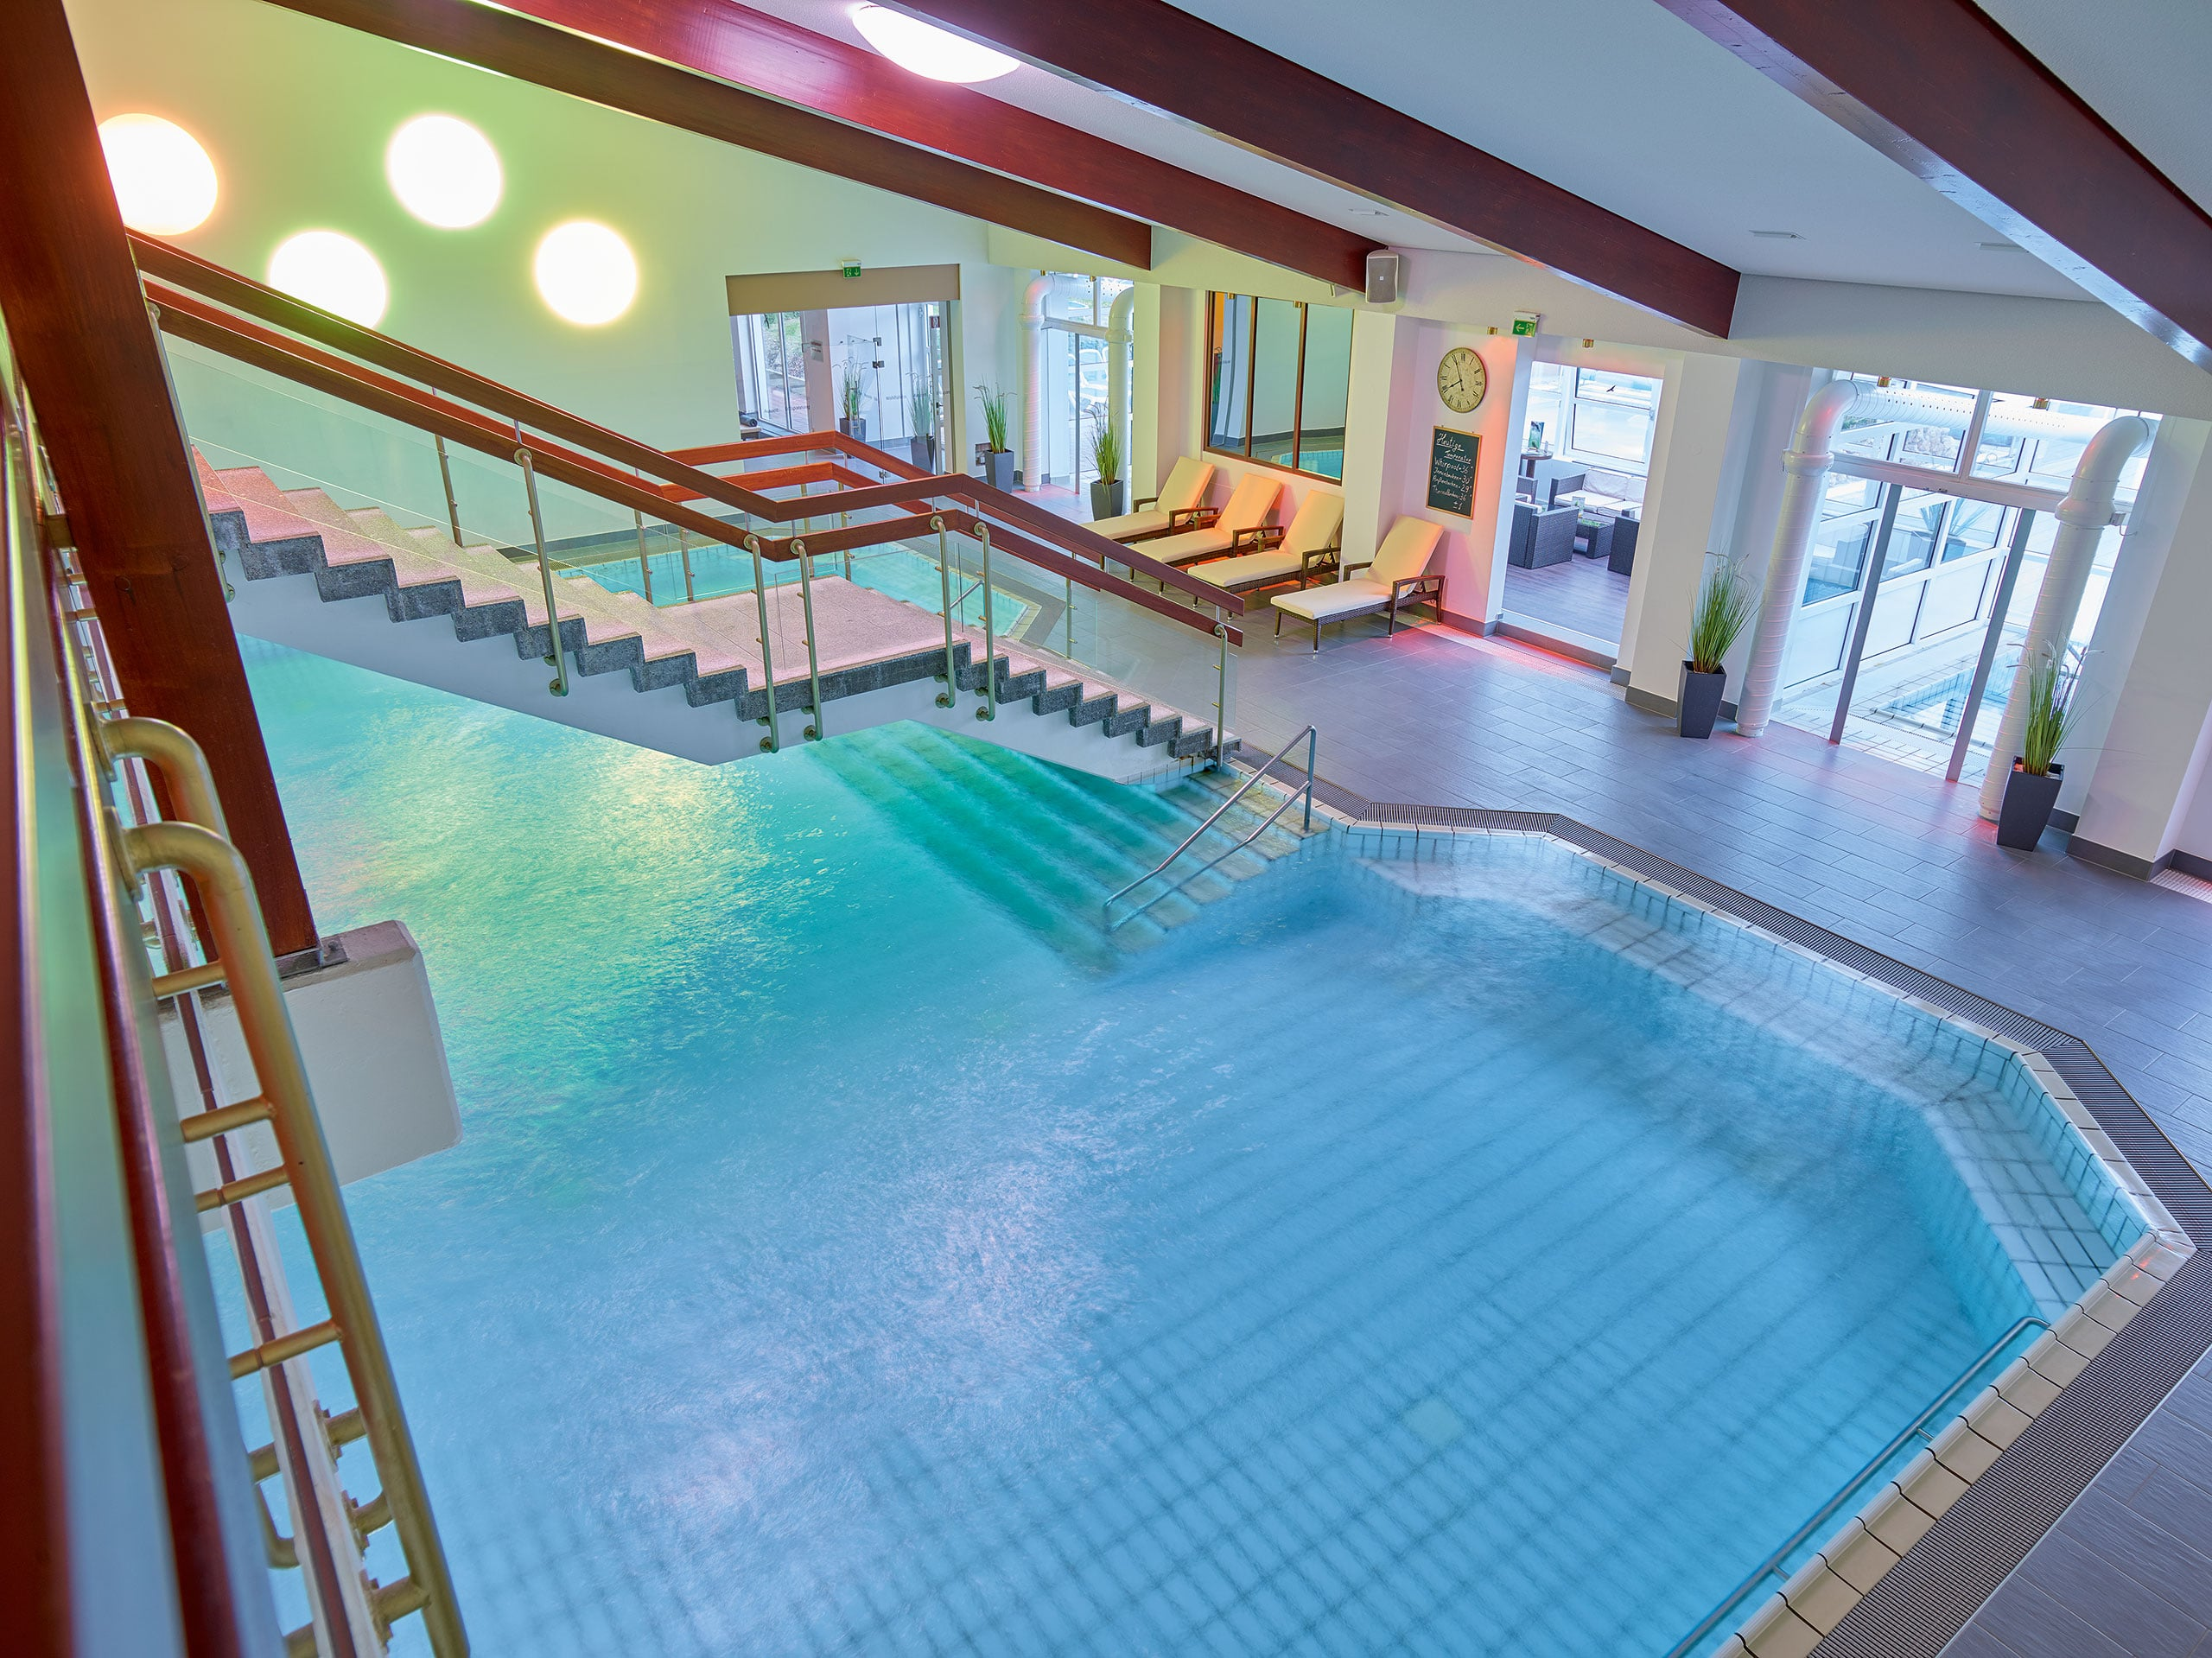 Therme großes Becken DAS LUDWIG